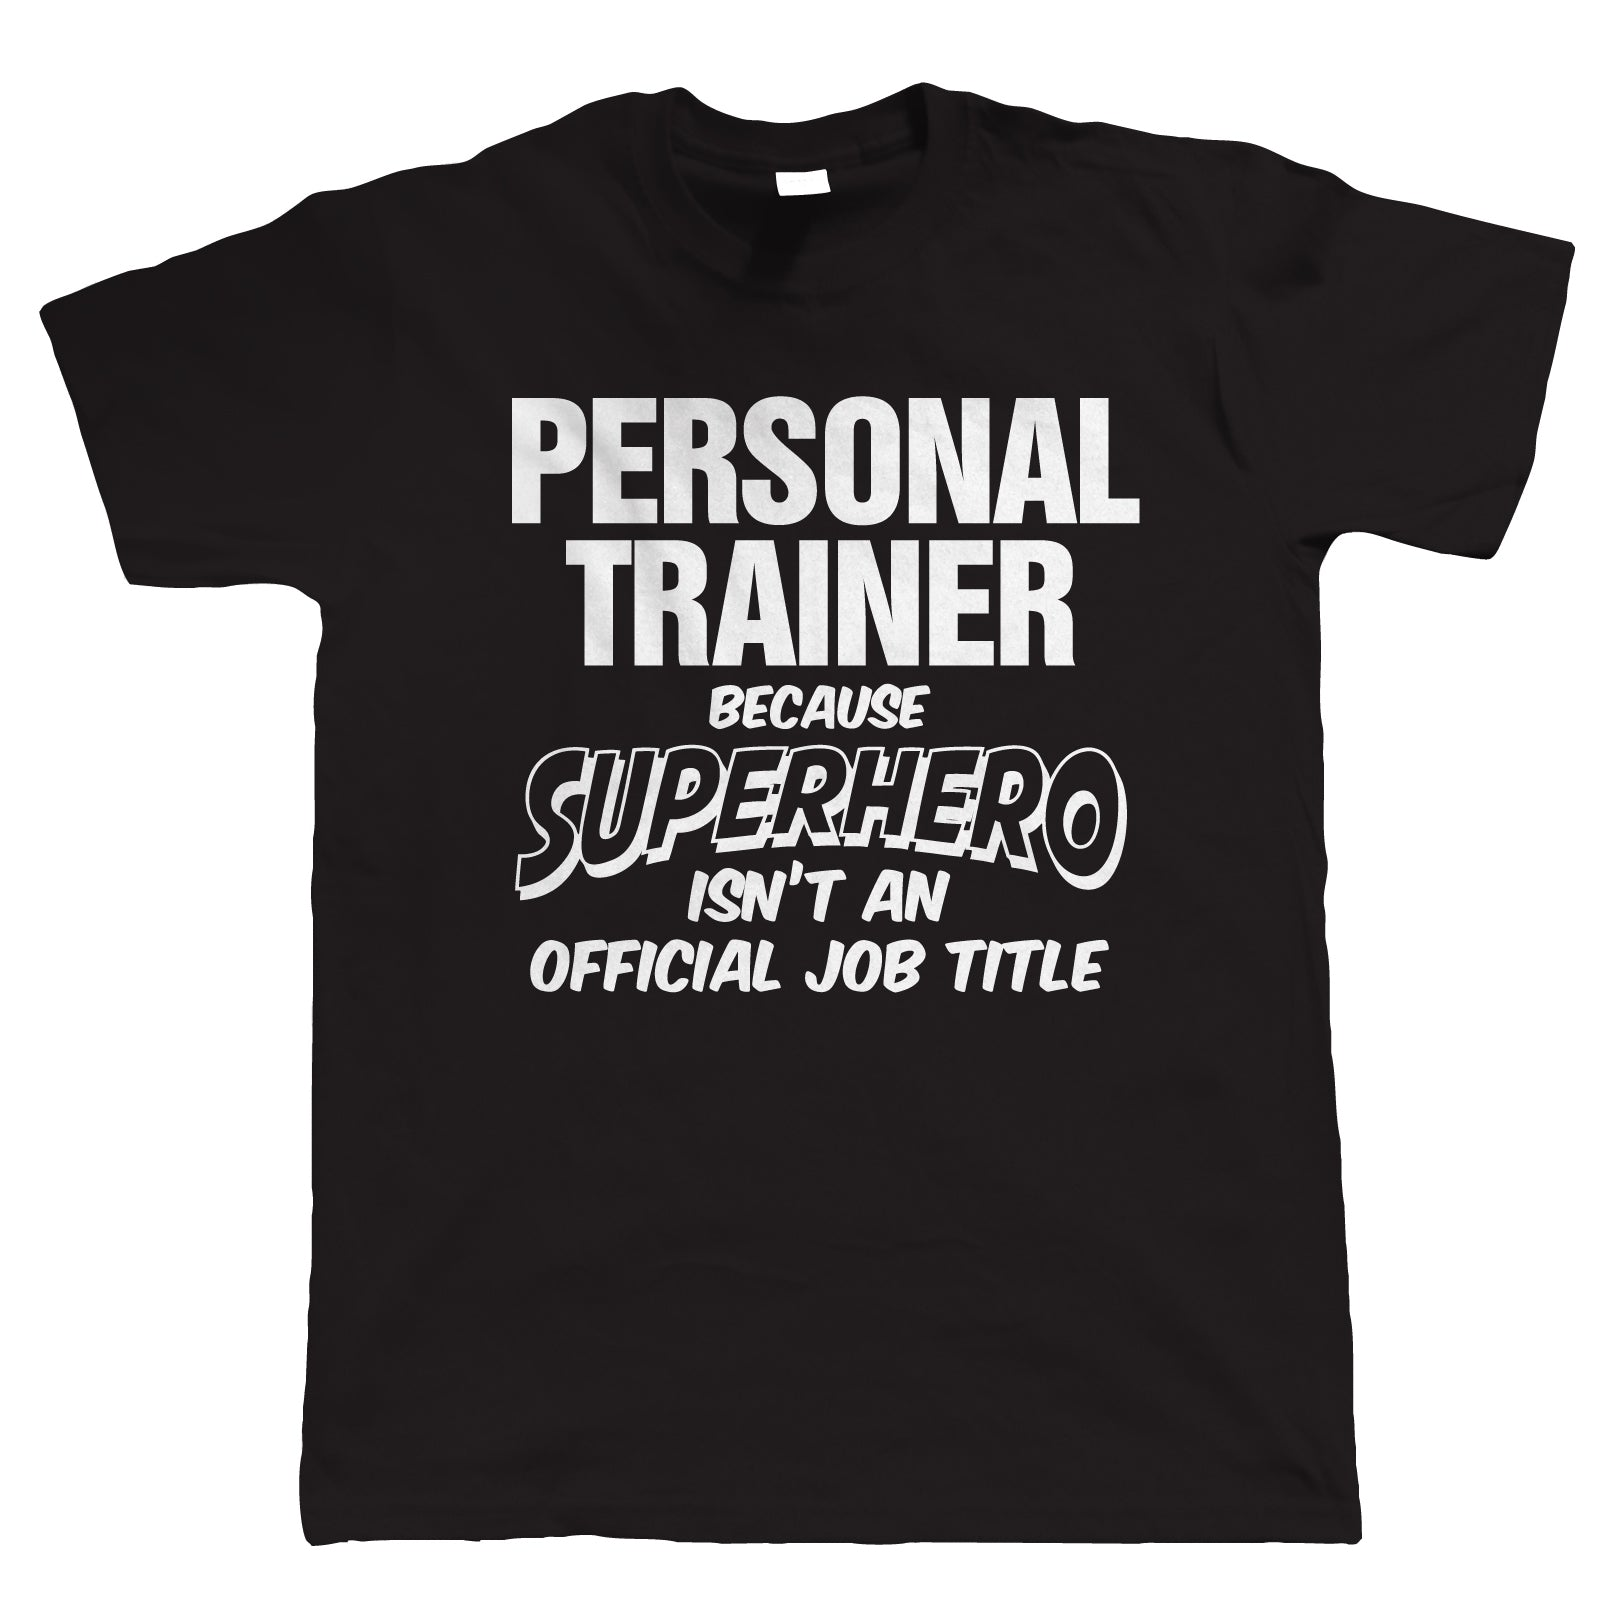 Personal Trainer Superhero, Mens Funny T-Shirt